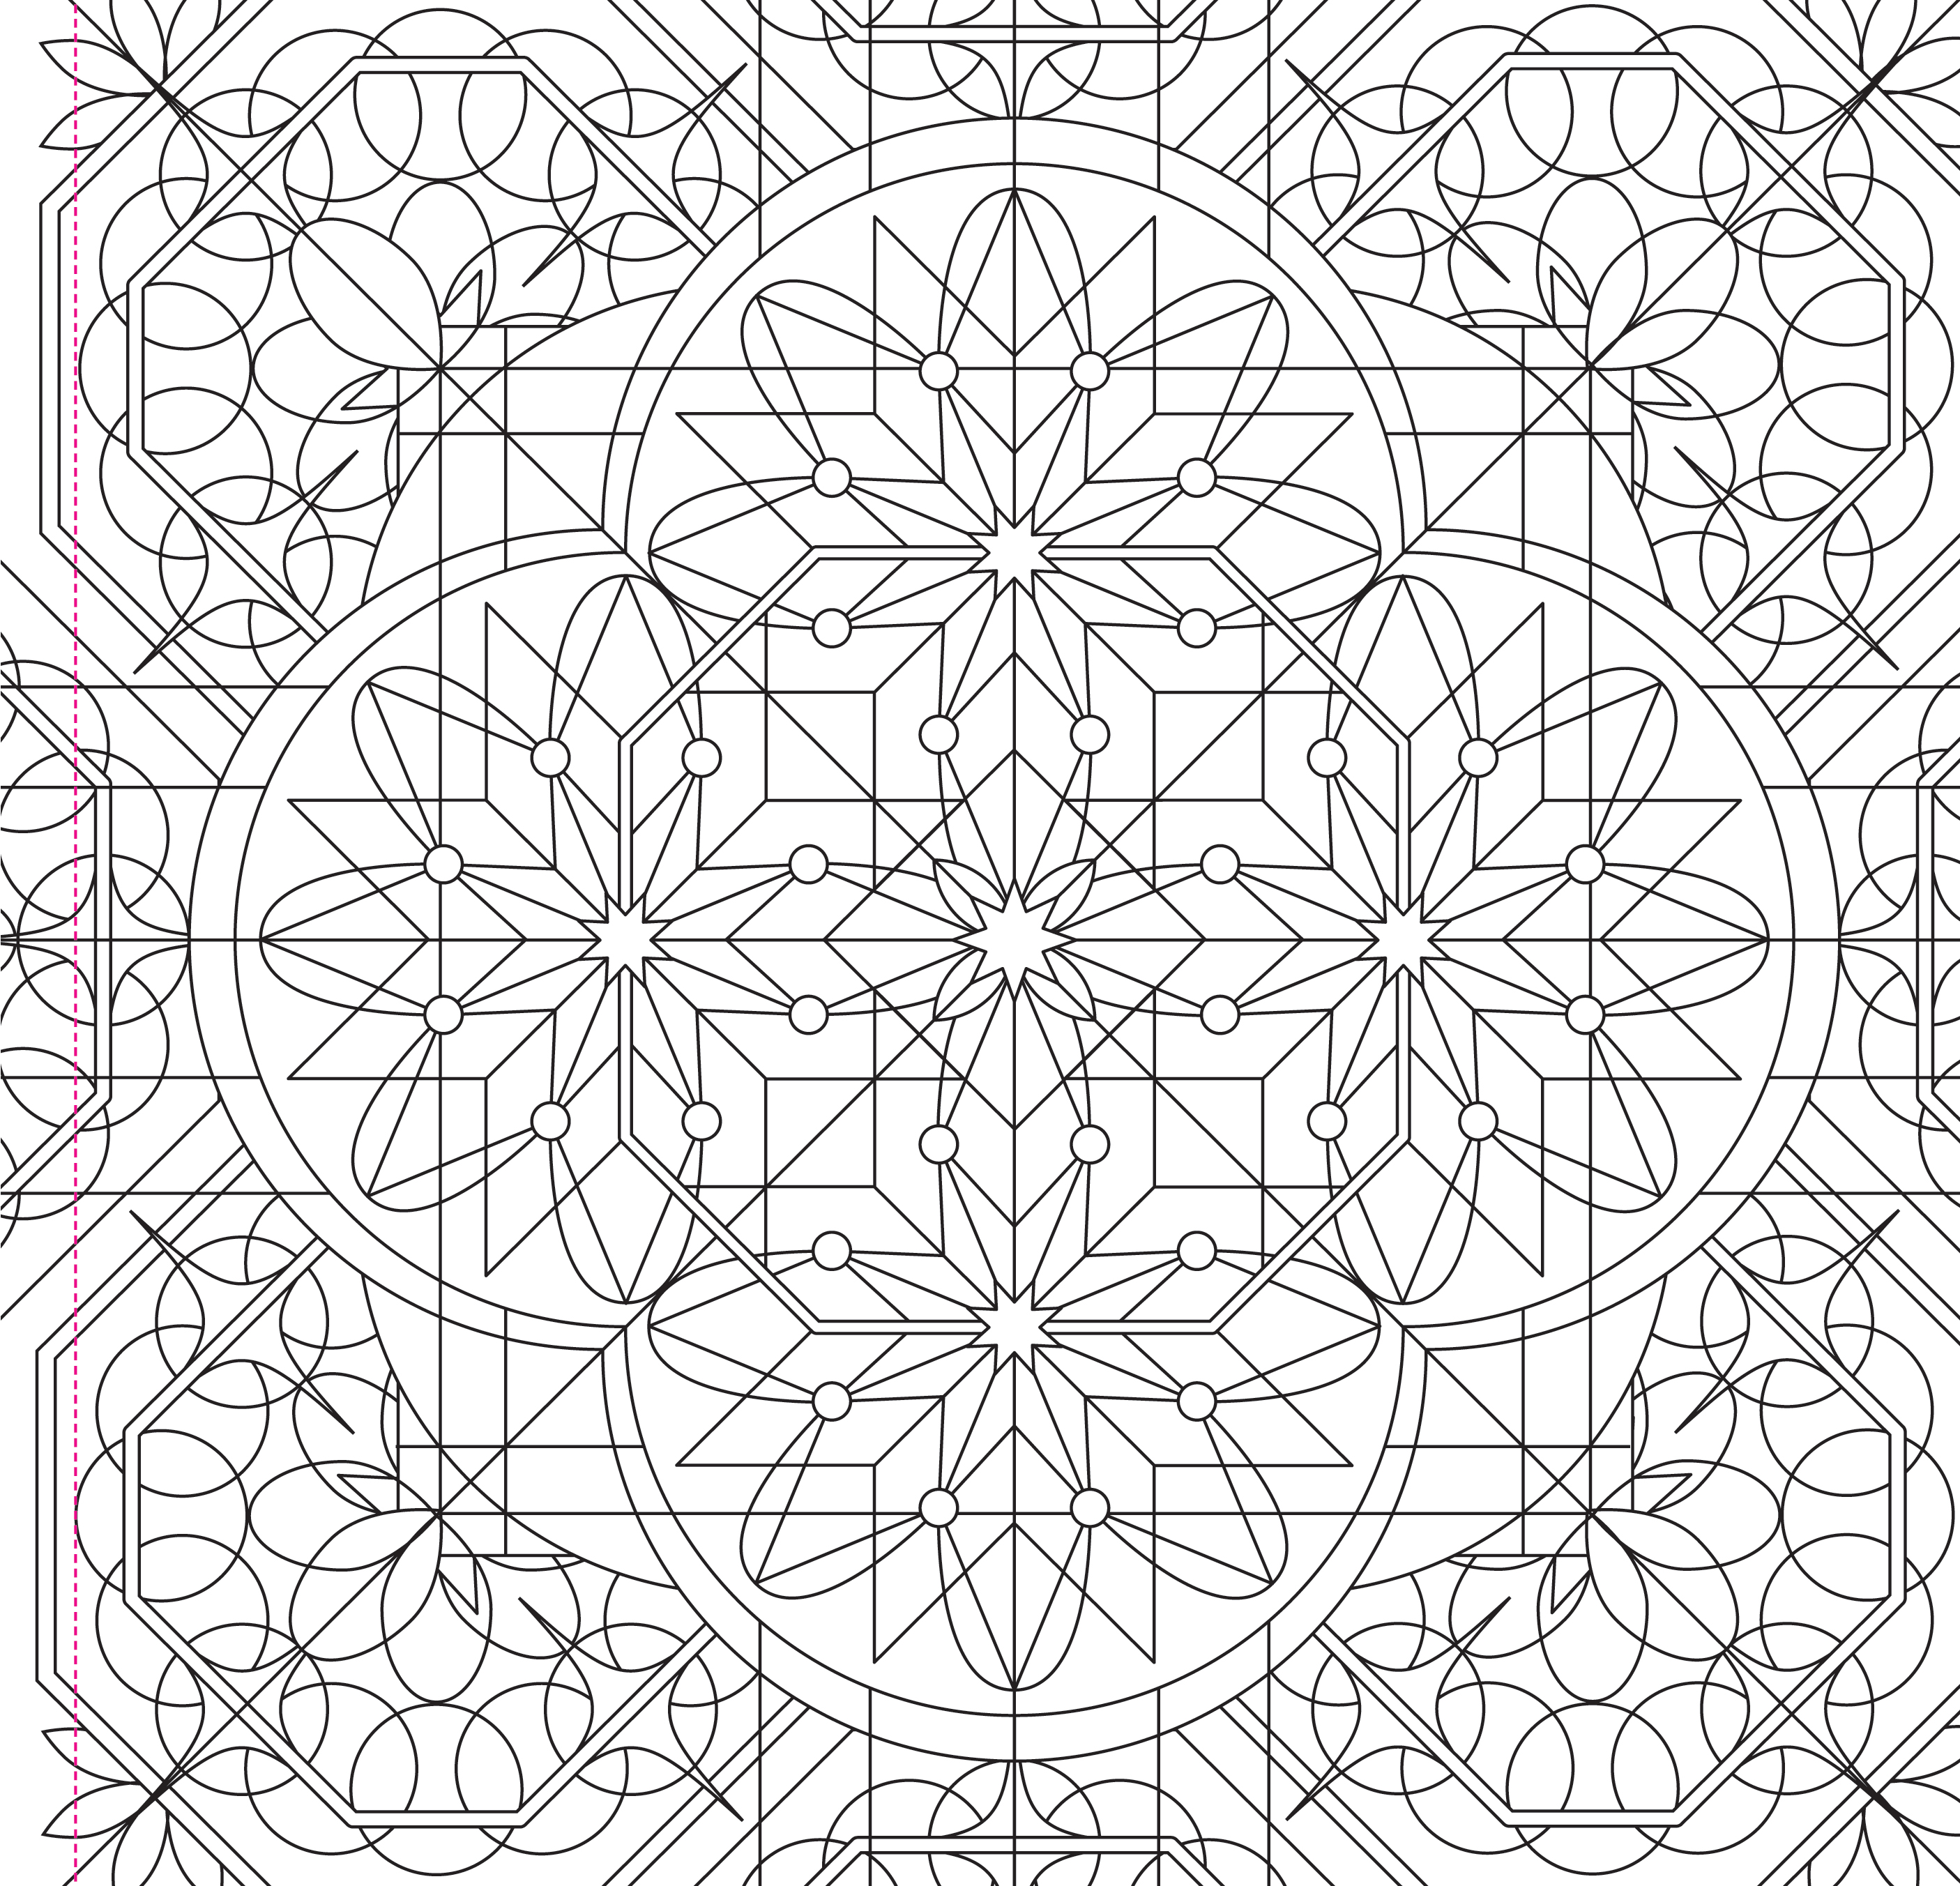 Kaleidoscope Designs Artists Coloring Book Papermese